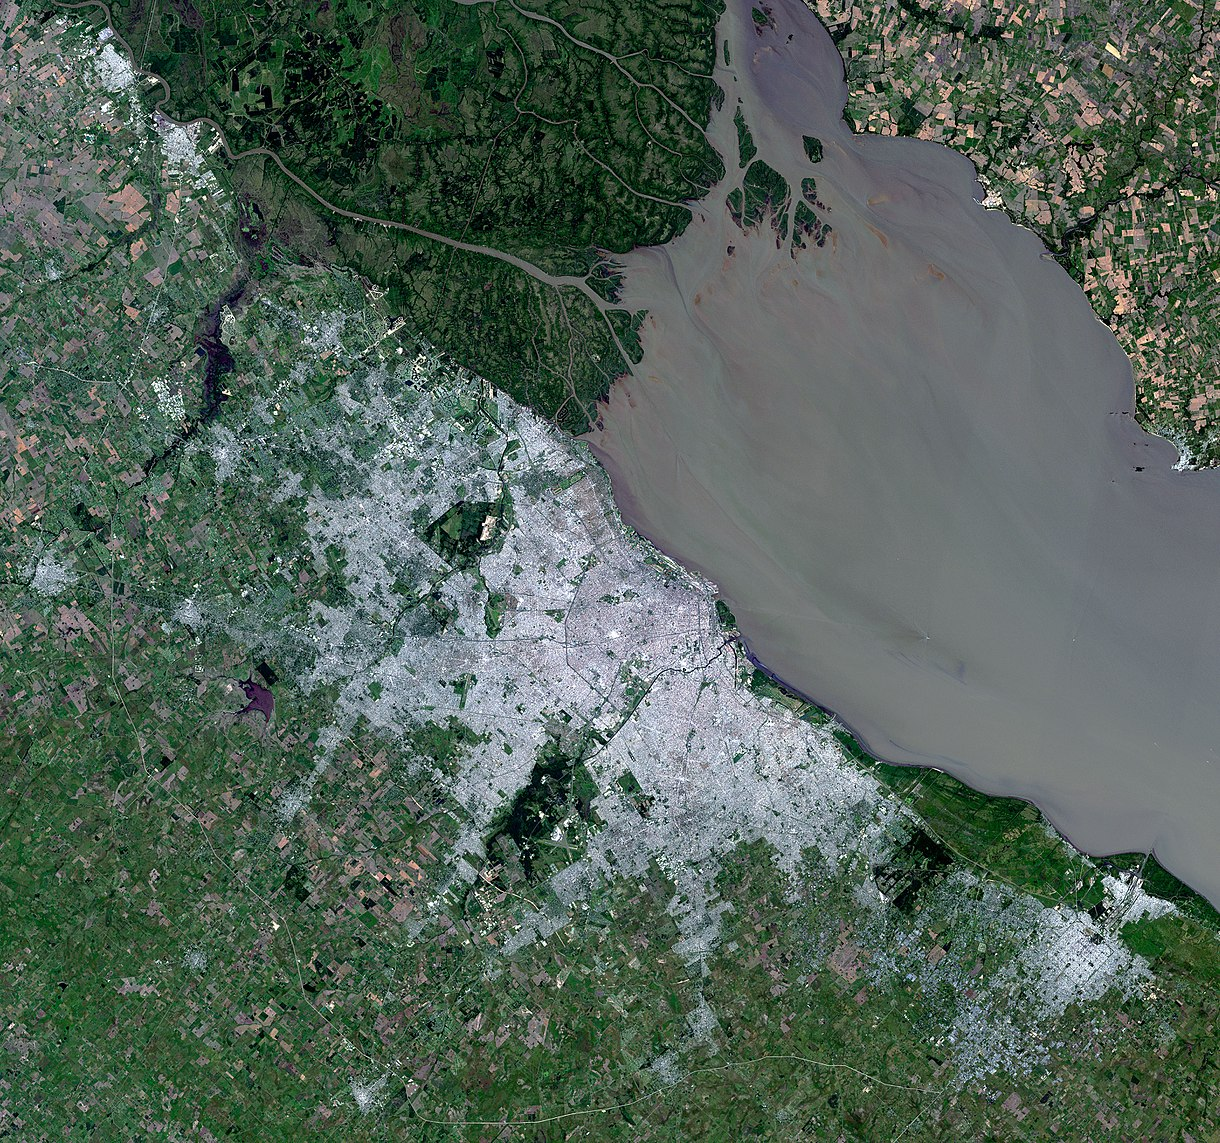 Satellite view of the Greater Buenos Aires area, and the Rio de la Plata. Landsat - 2014 Satellite image of Buenos Aires, Argentina - December 19, 2014.jpg